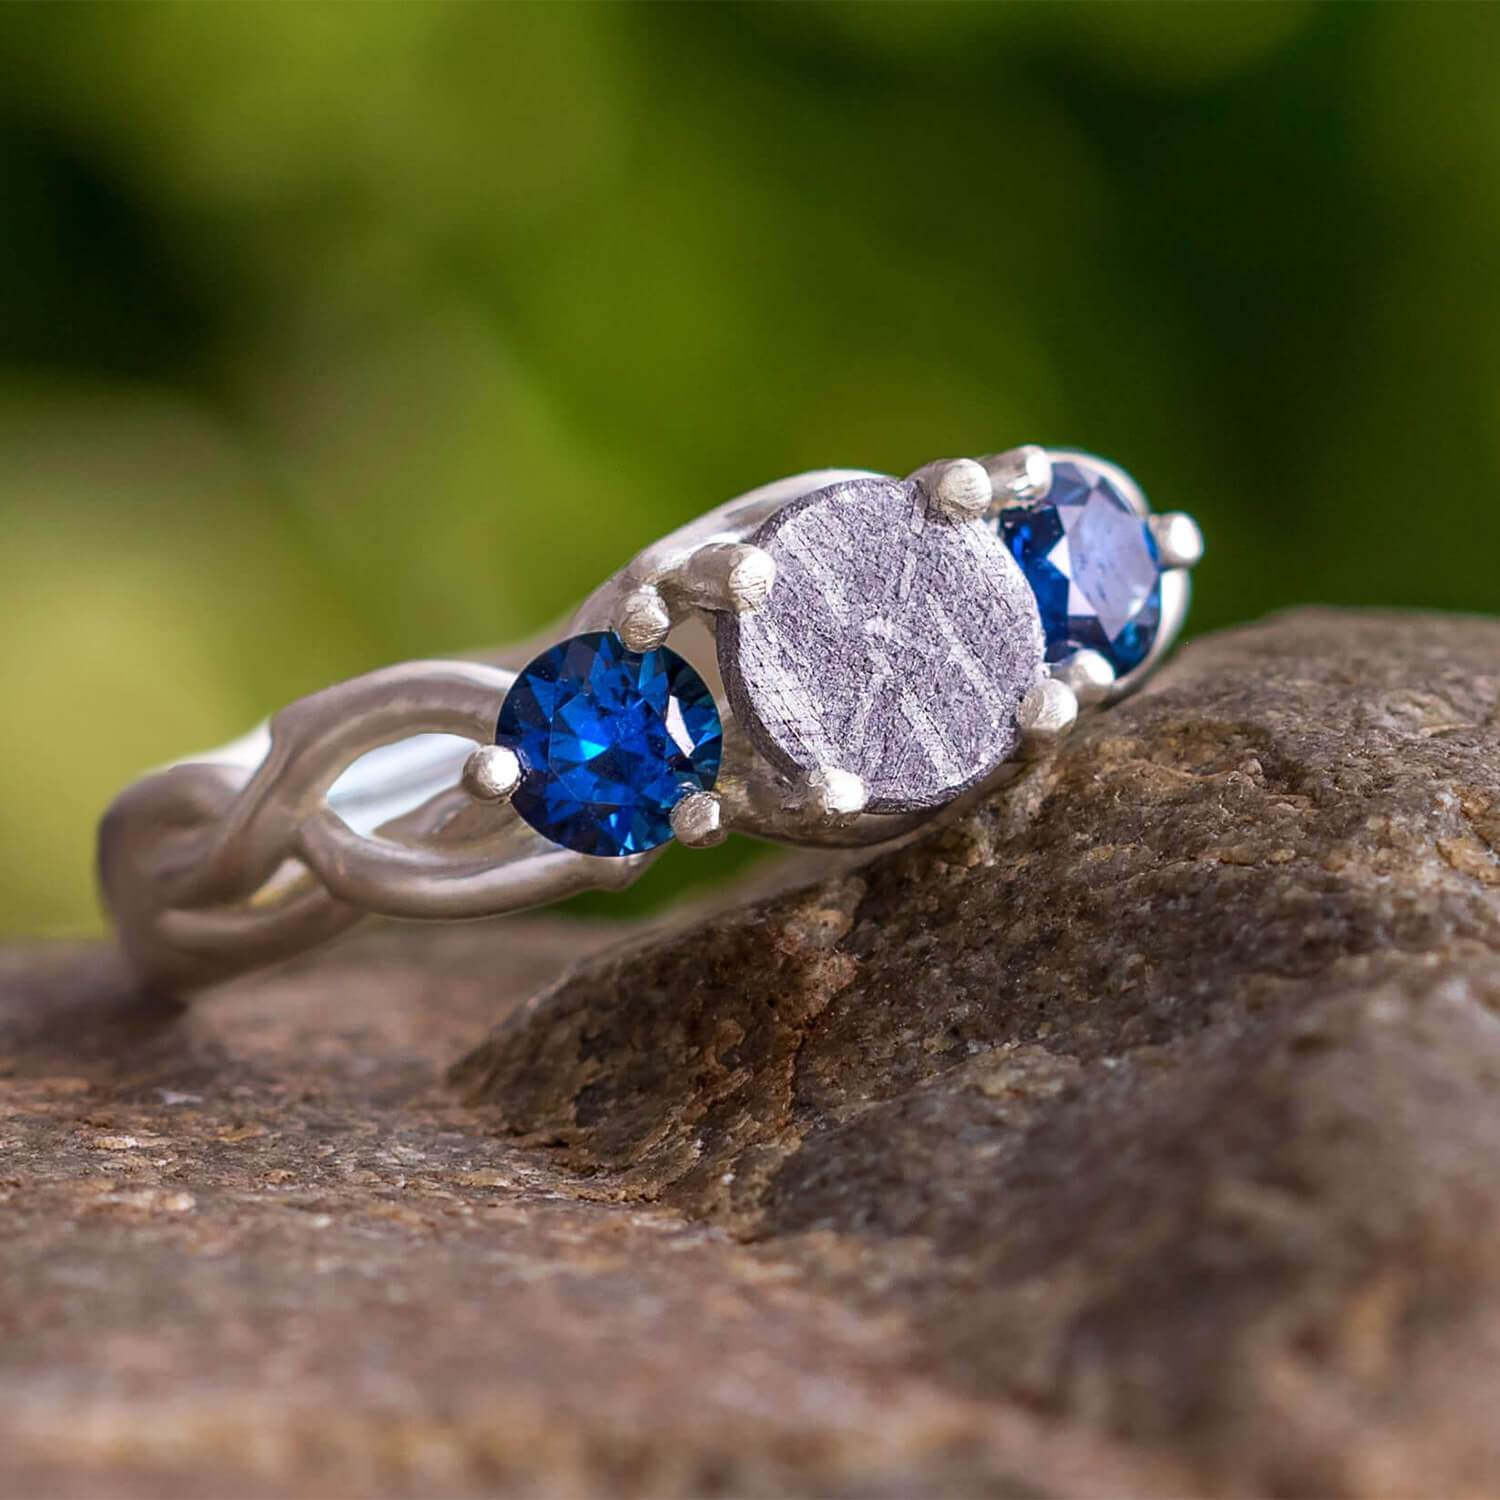 Blue Sapphire & Meteorite Engagement Ring, In Stock-SIG3049 - Jewelry by Johan